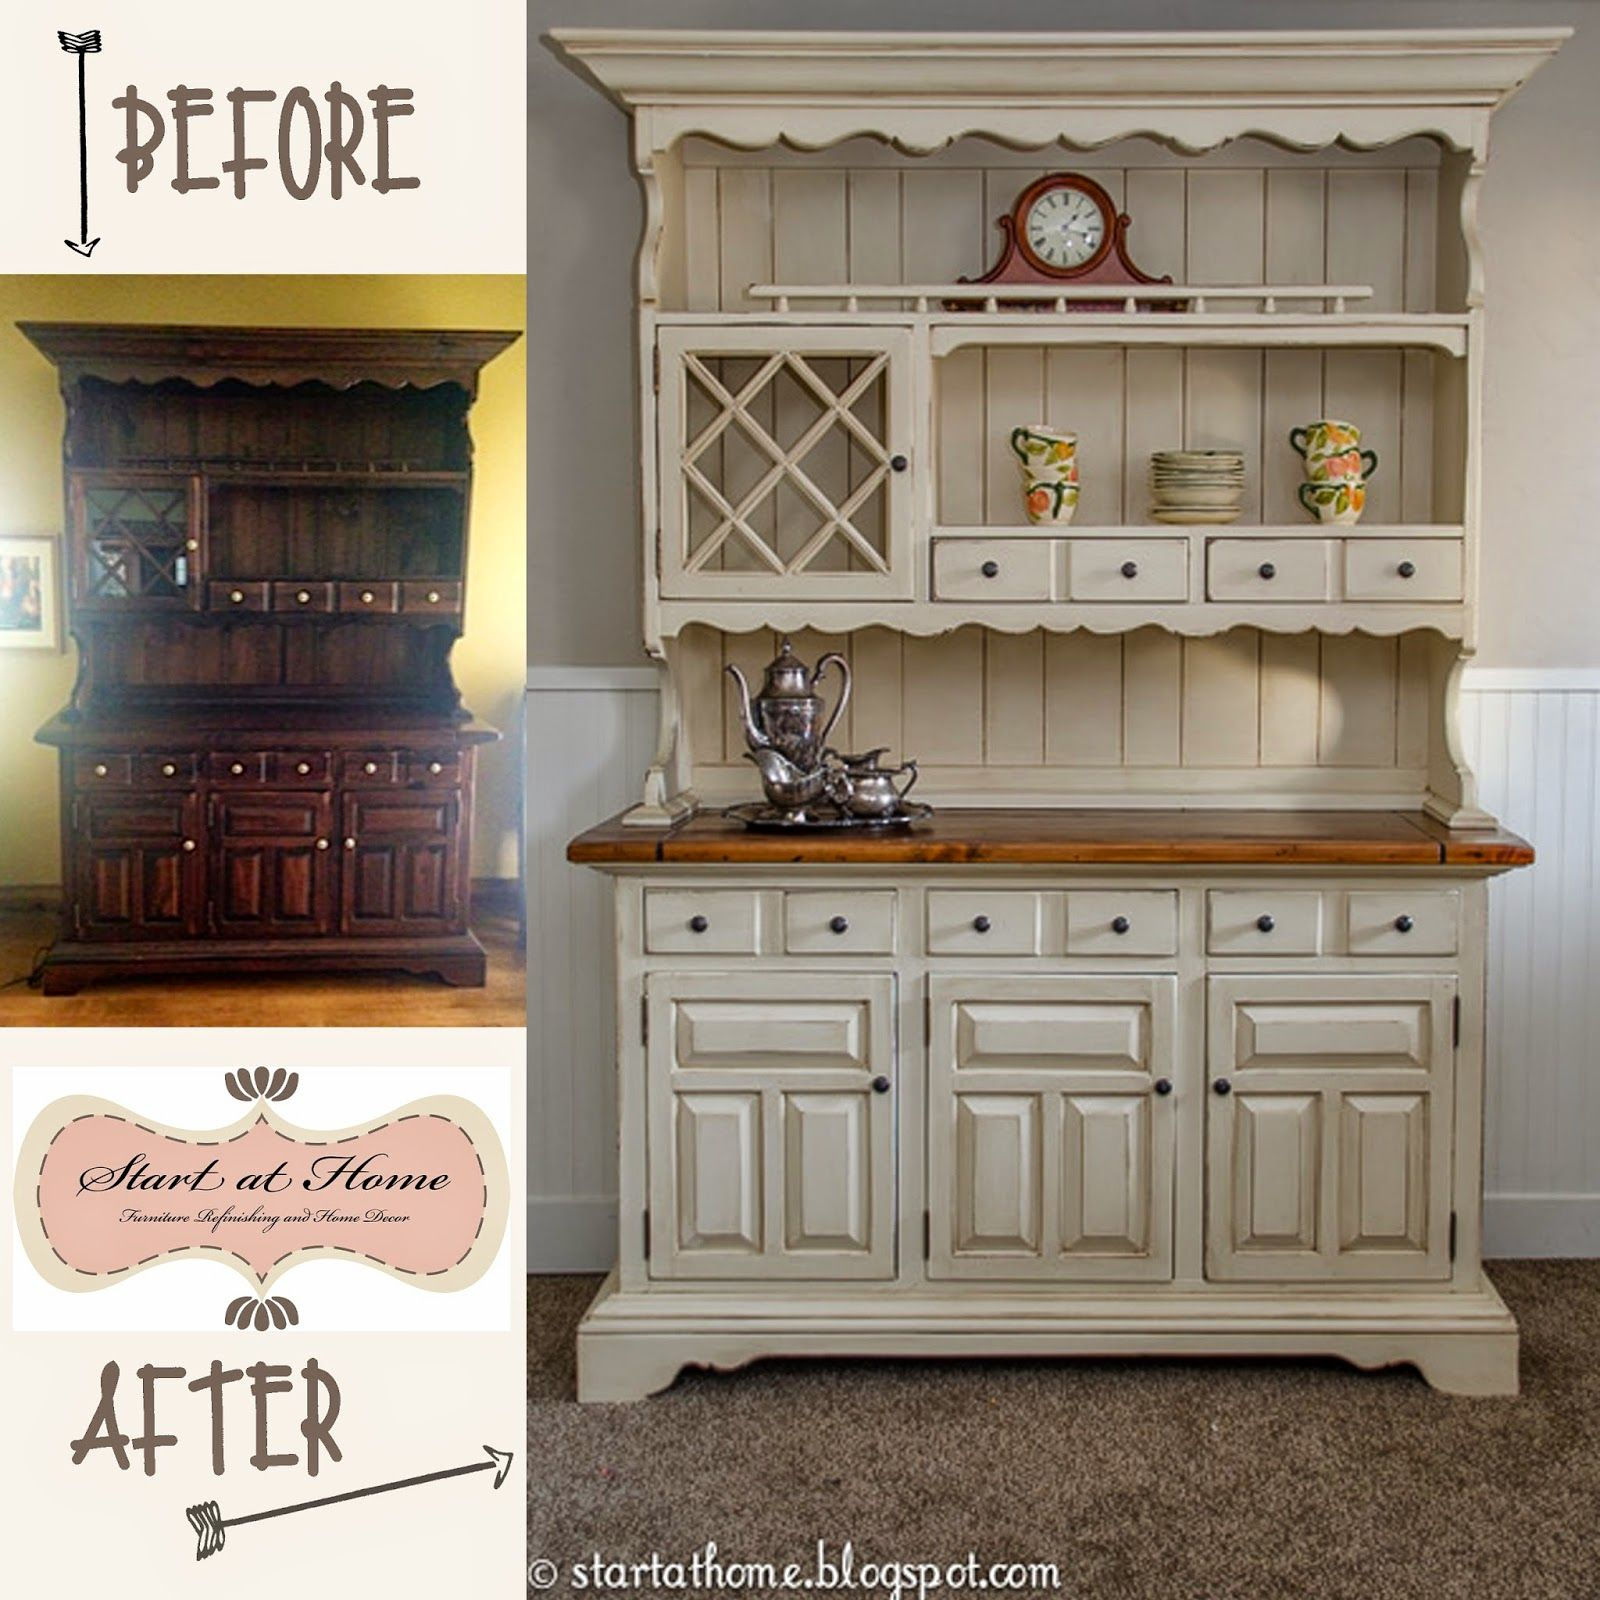 the hutch makeover turned out really well i must say what a